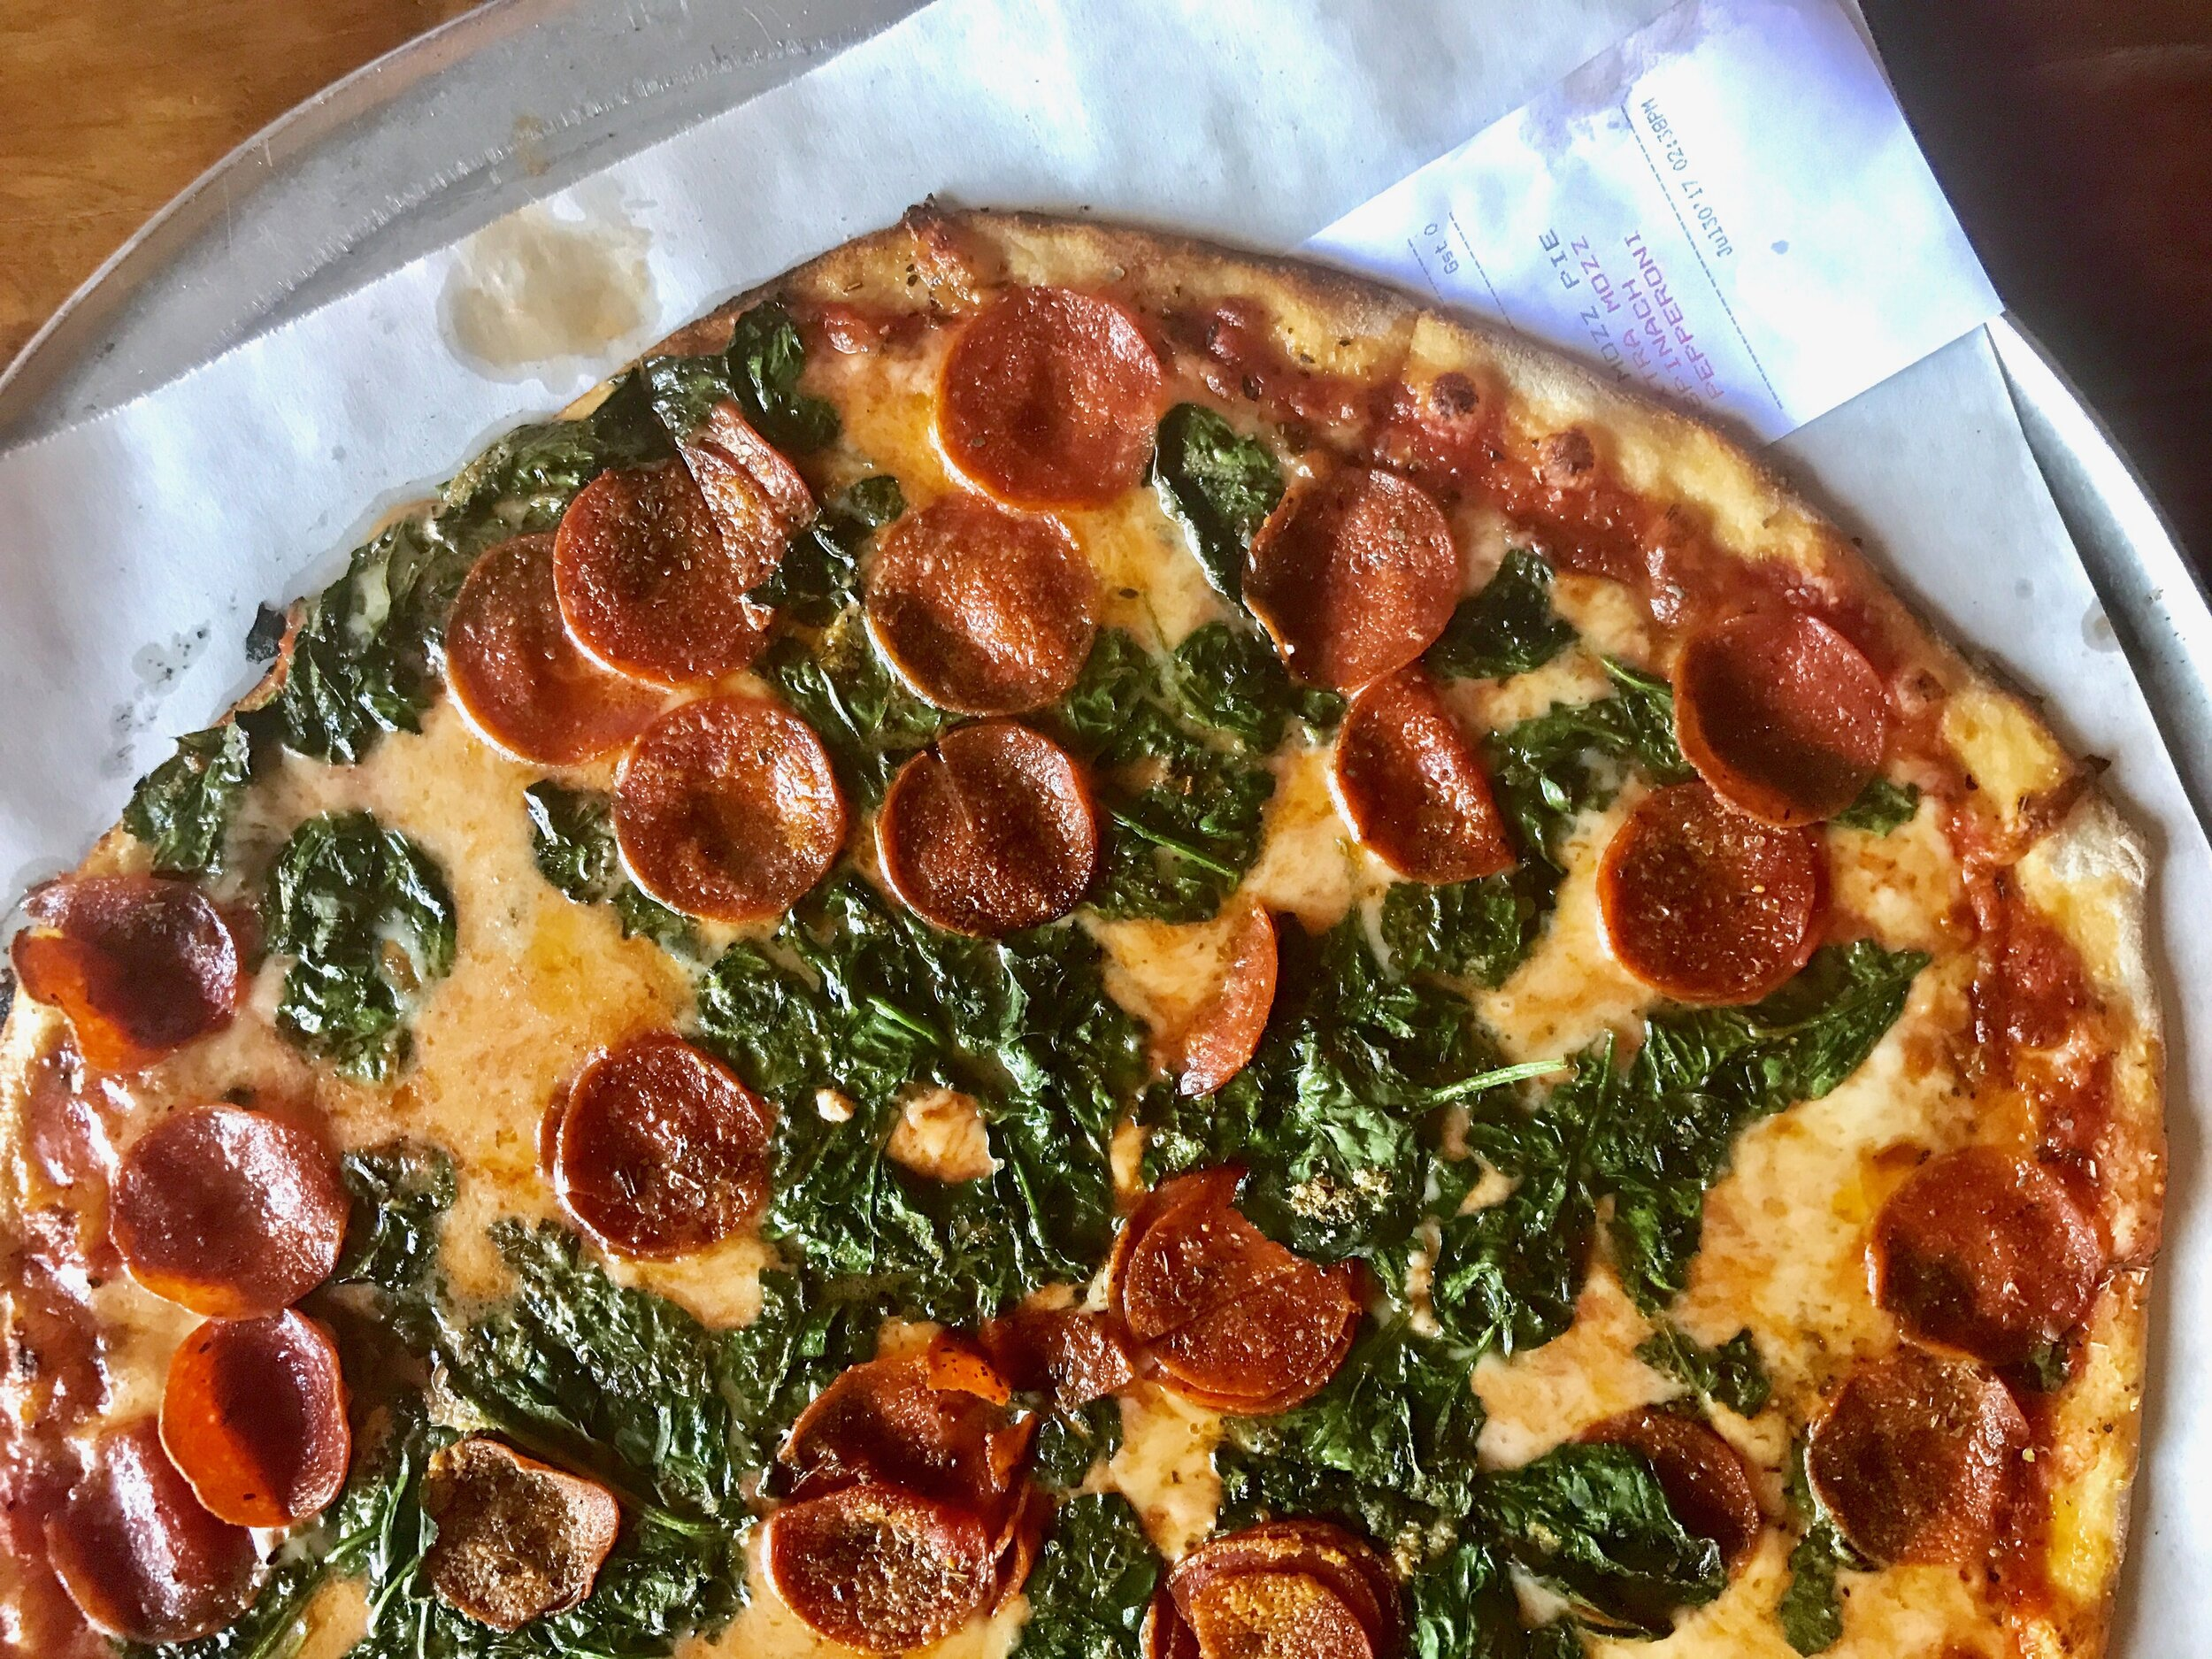 Here's how to order: Size of your choice (Small, Medium or Large), Red, Mozzarella, Extra Mozzarella, Double Pepperoni, Spinach (garlic suggested)